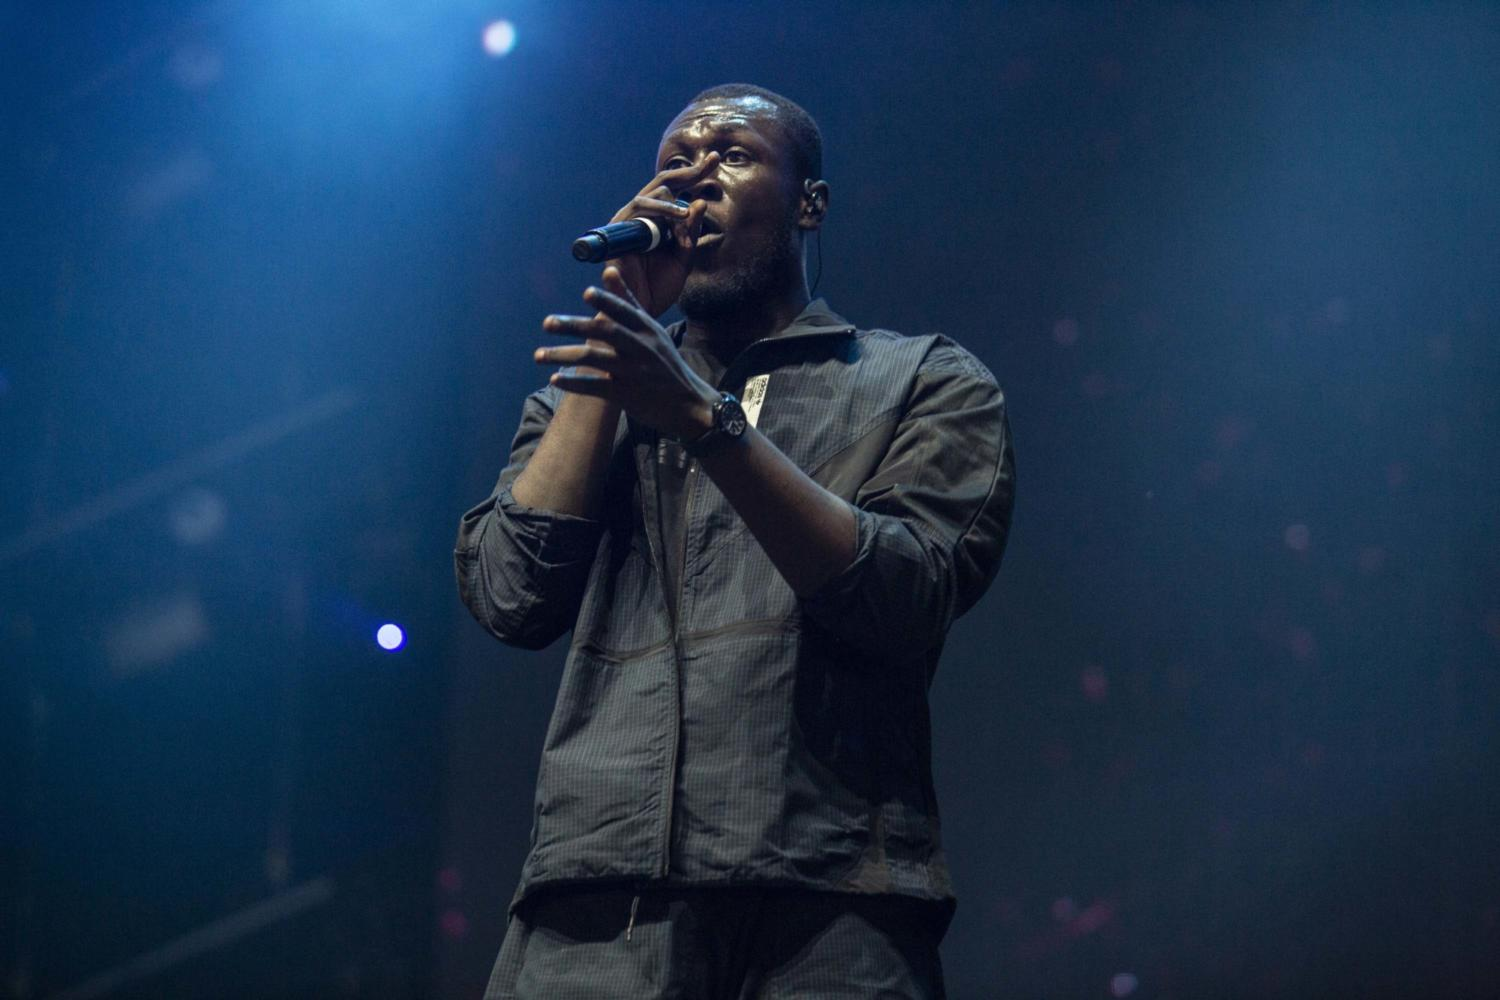 Stormzy to donate £10 million to organisations fighting racial inequality